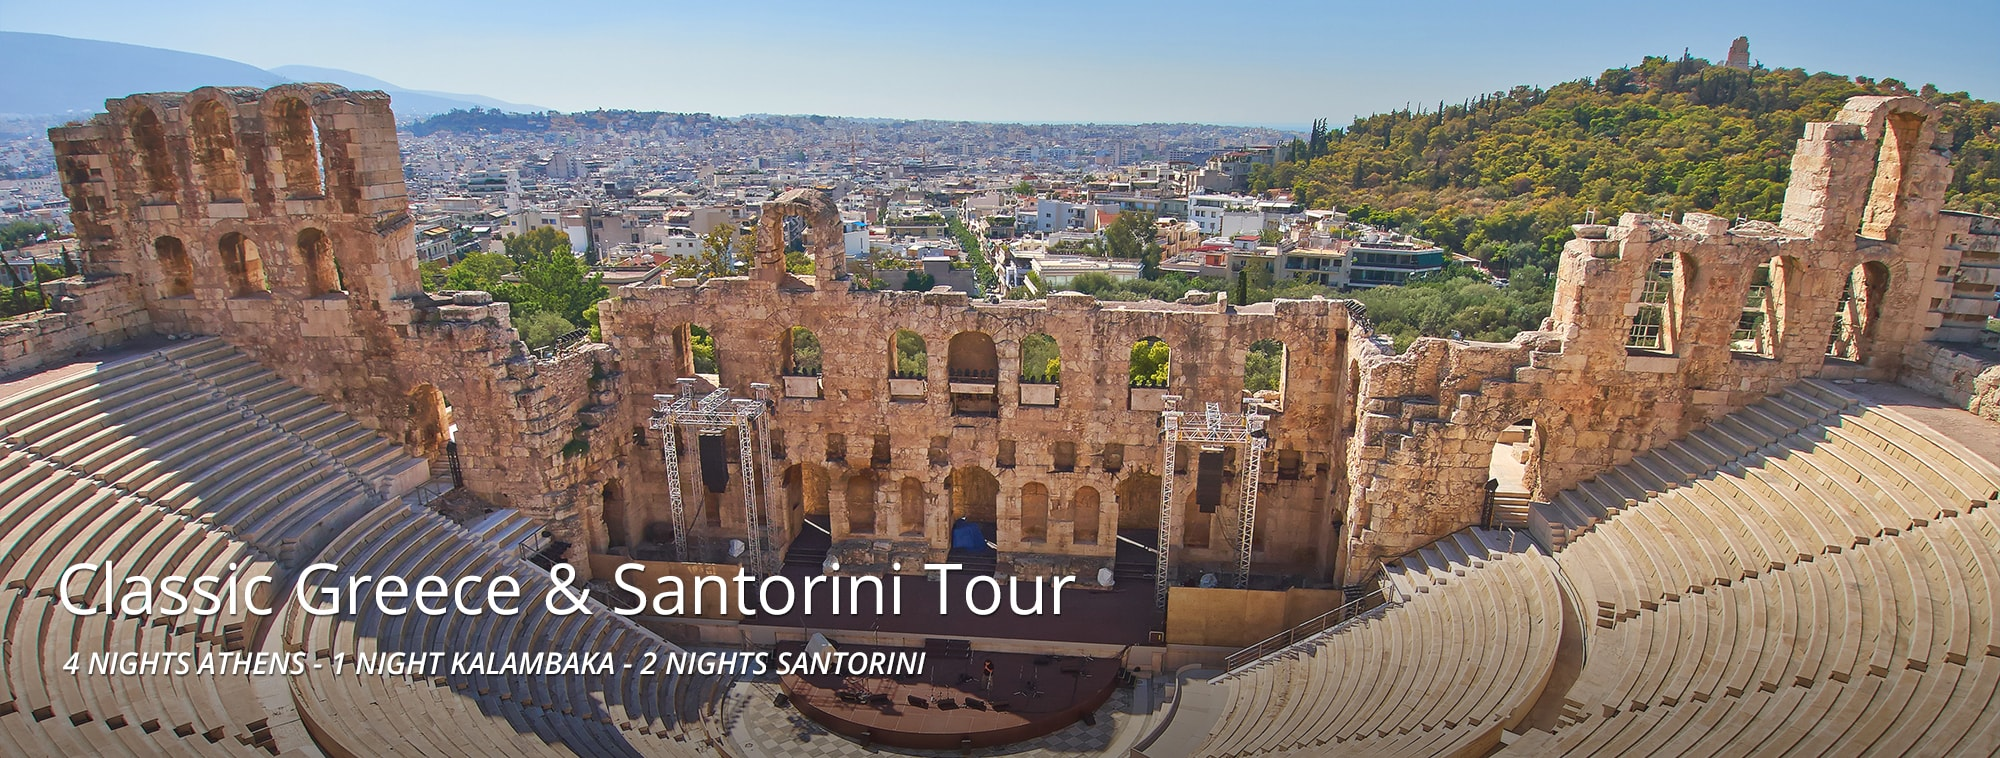 Classic Greece and Santorini Tour Banner